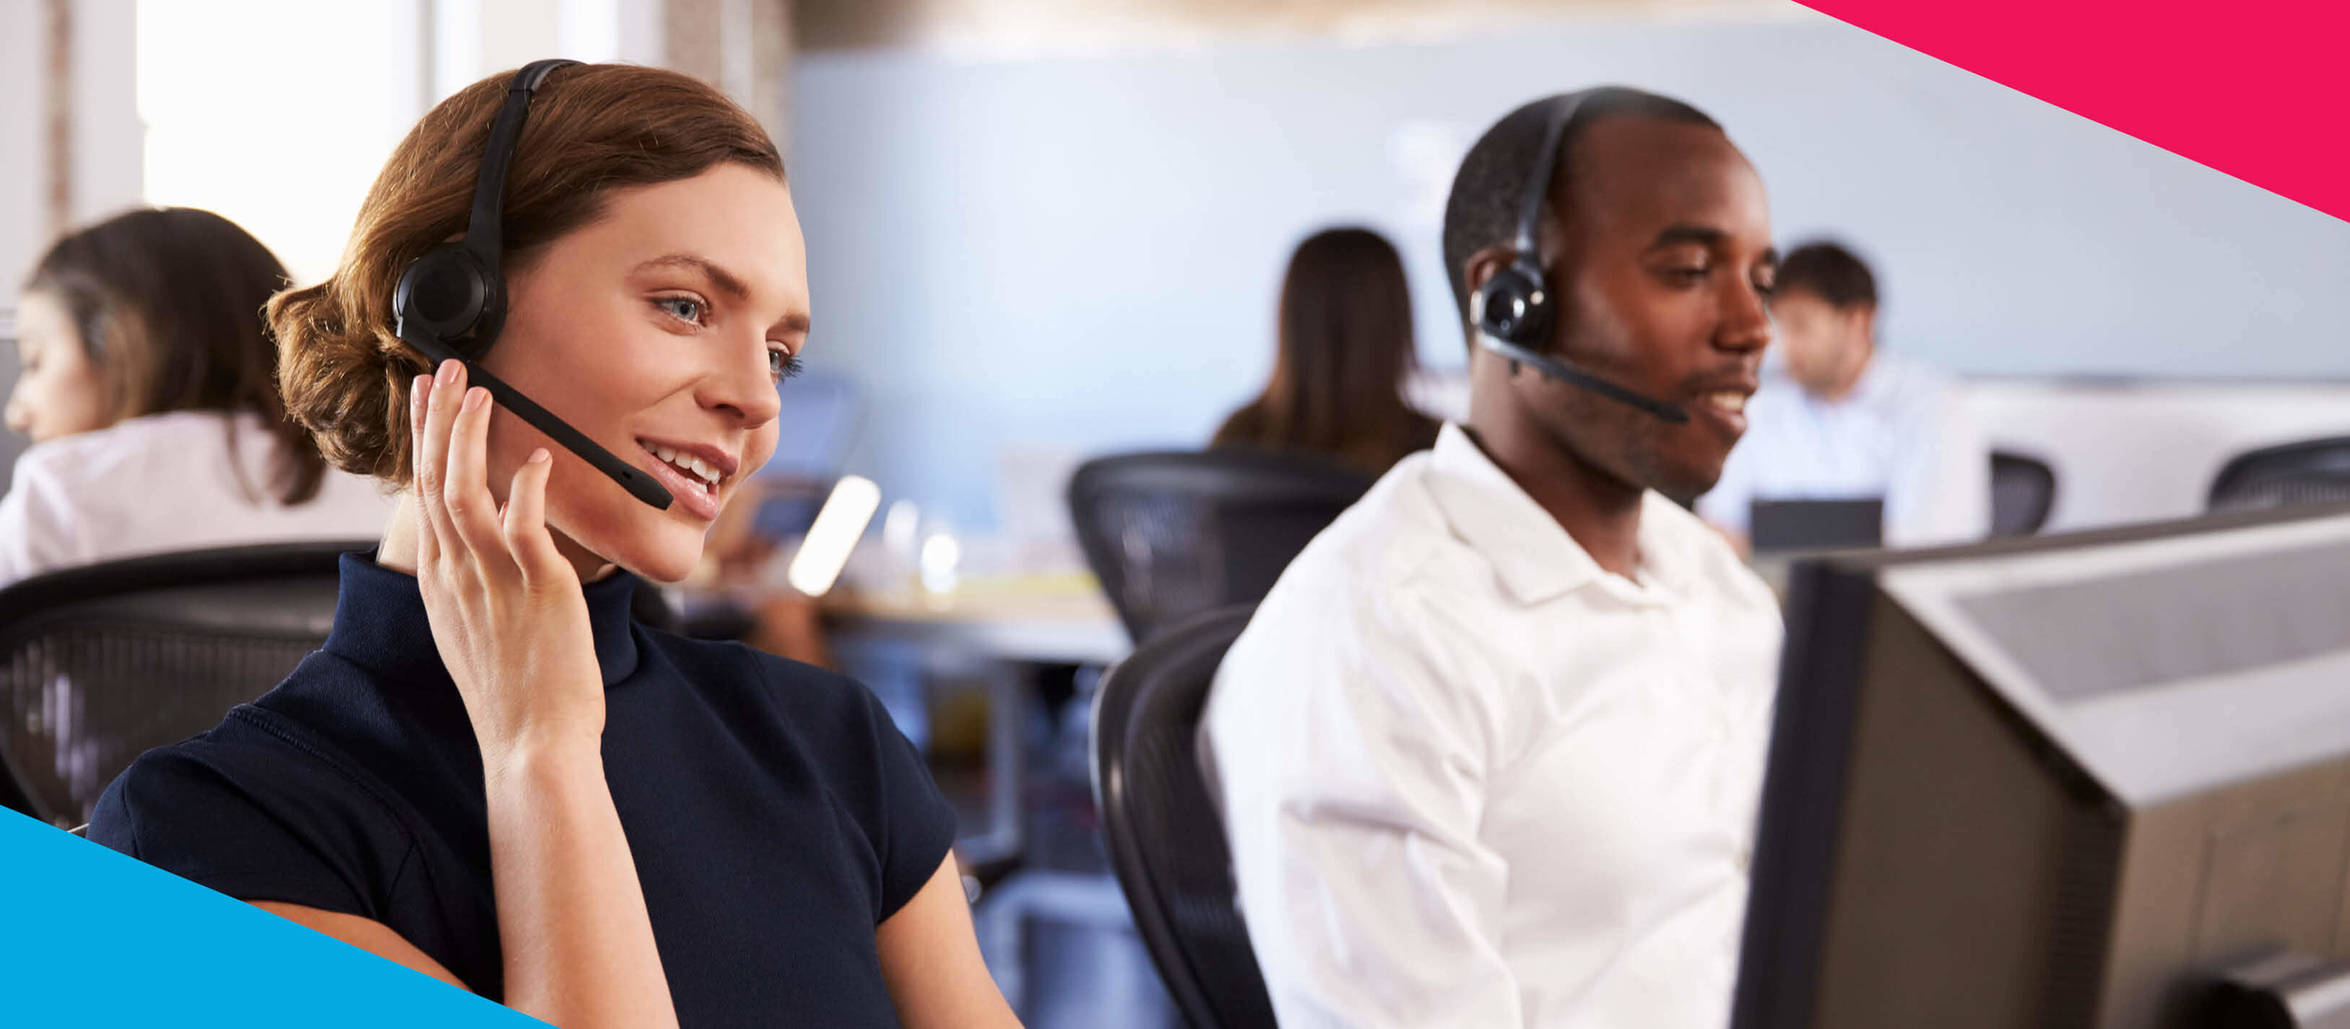 Call Canetre and Customer Services. Male and Female Customer Service Advisors on the phone